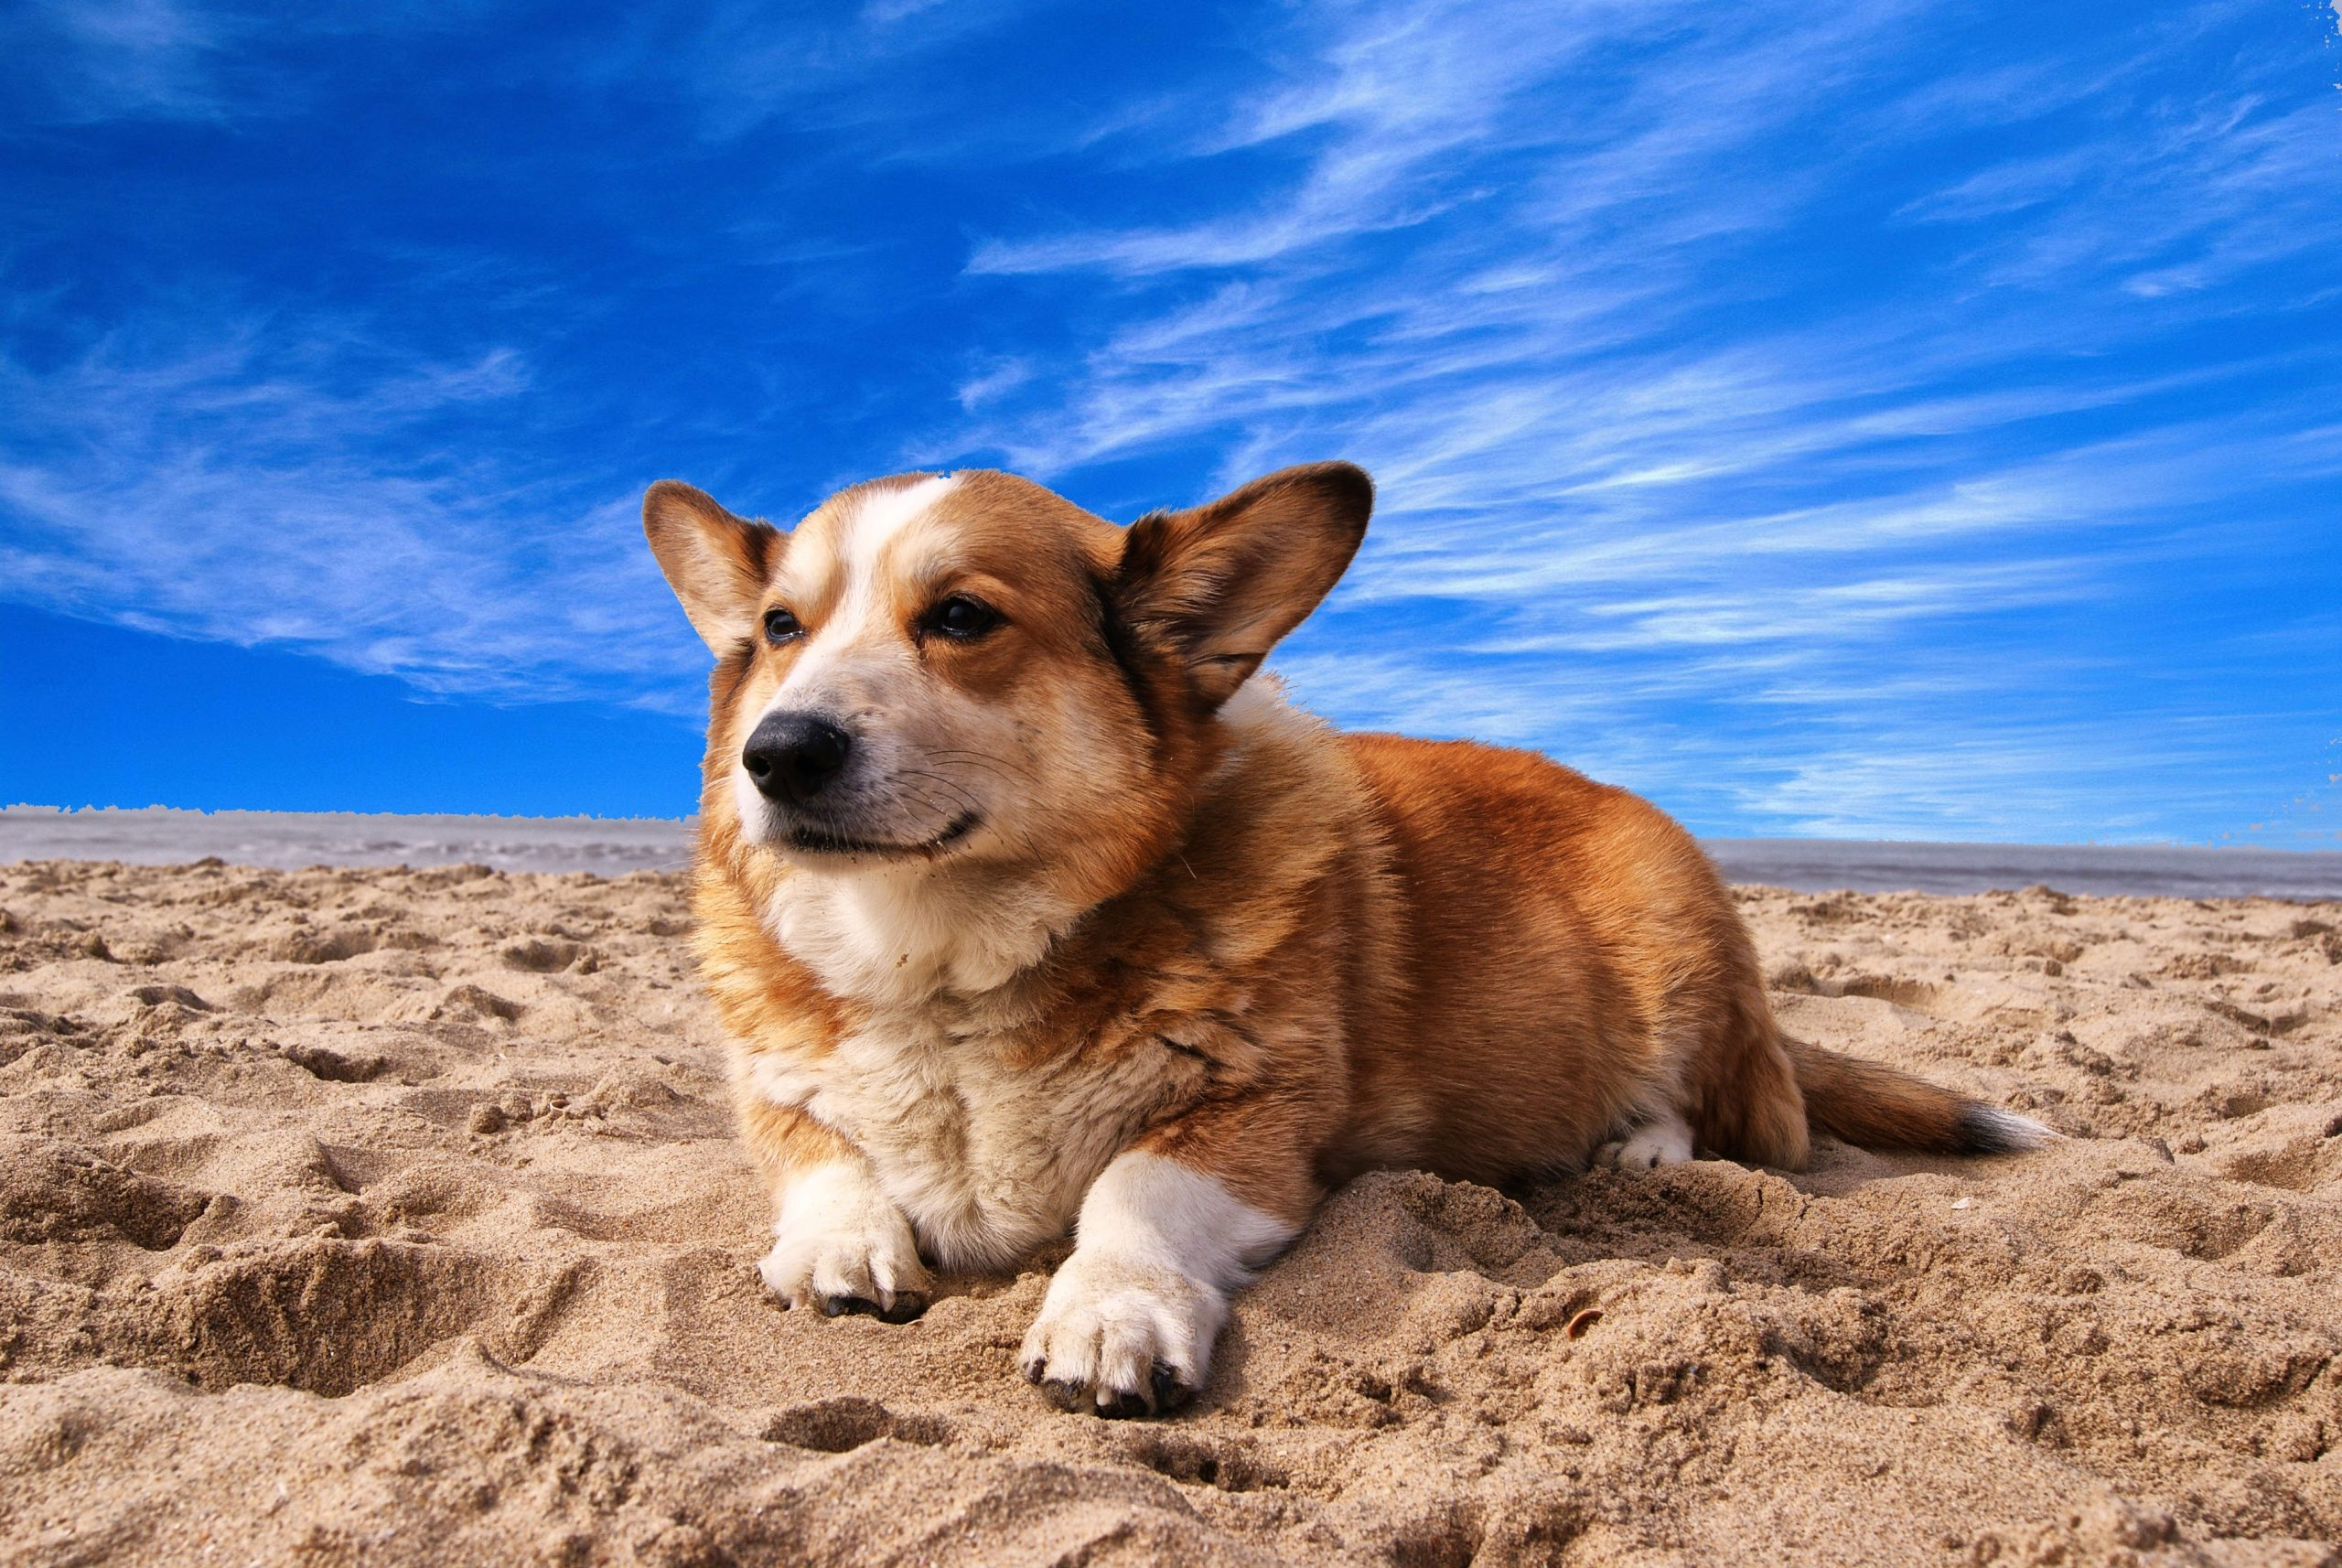 a corgi laying on sand below a vibrant blue sky